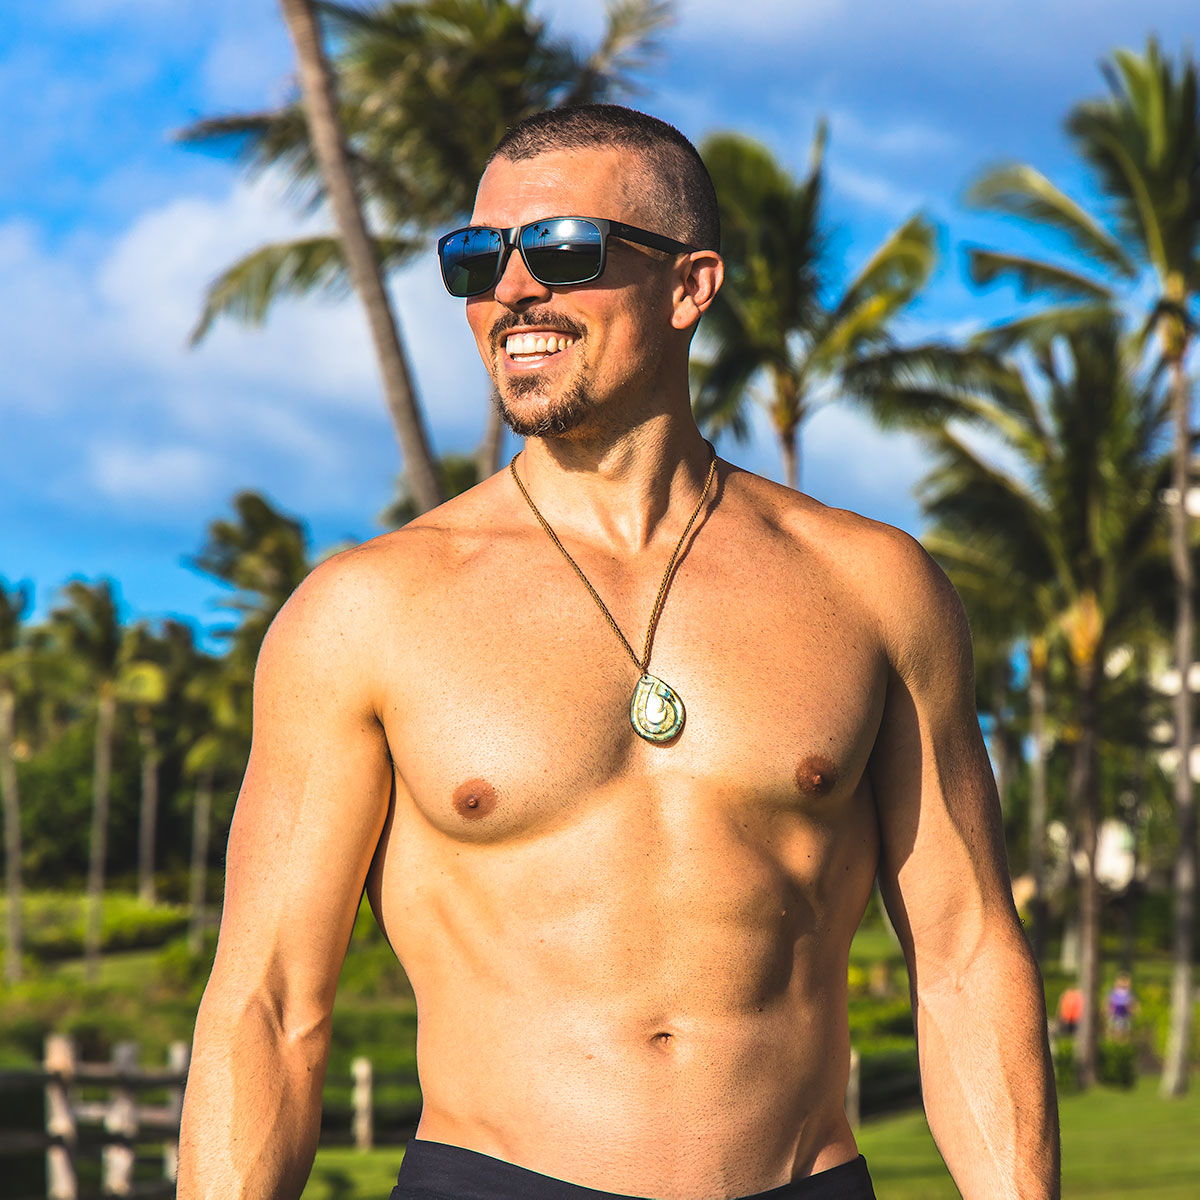 Darren Natoni standing shirtless in a tropical environment of palm trees and green grass under a blue sky while smiling and wearing black Maui Jim sunglasses and a Hawaiian fish hook pendant around his neck from Maui artist Kai Chow